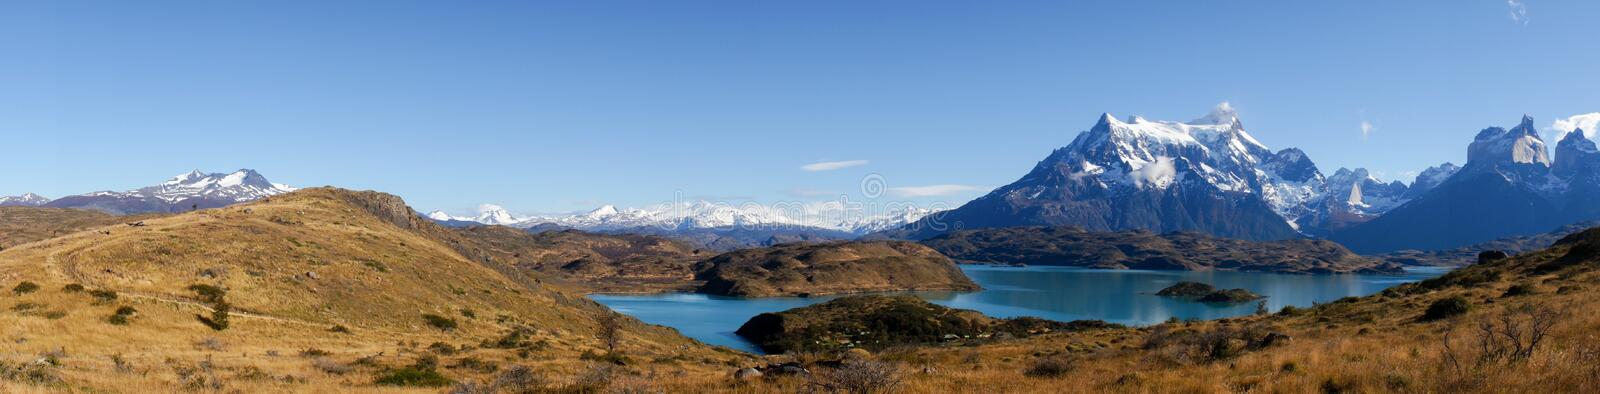 Panorama View from Mirador Pehoe towards the Mountains in Torres del Paine, Patagonia, Chile. stock images